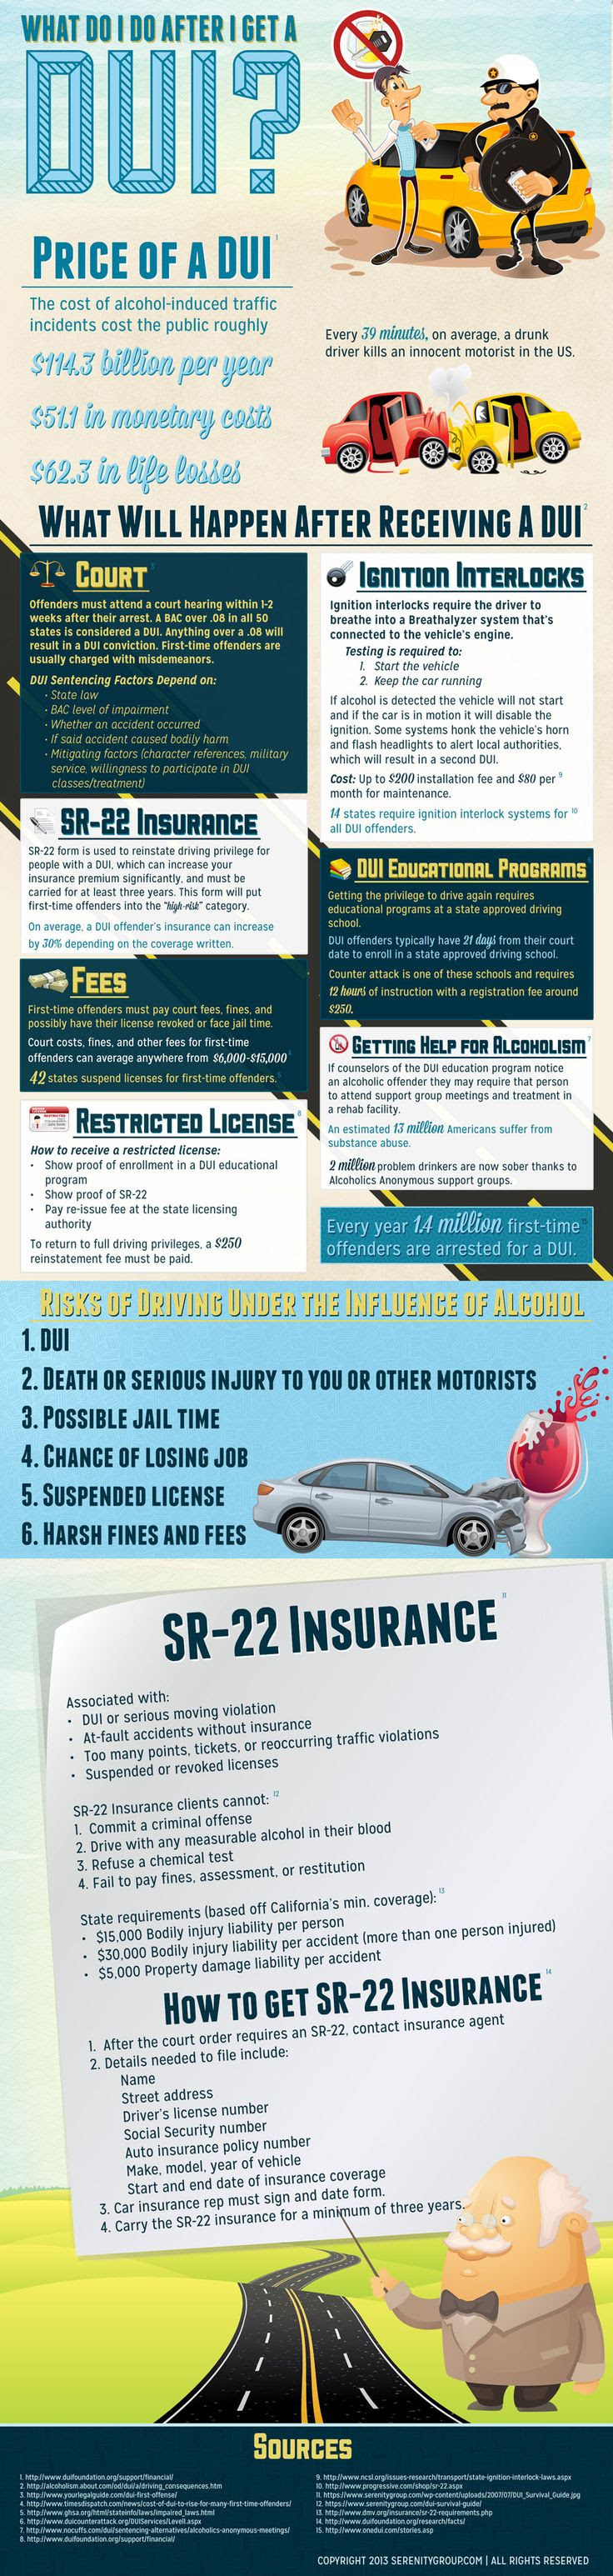 What To Do After DUI